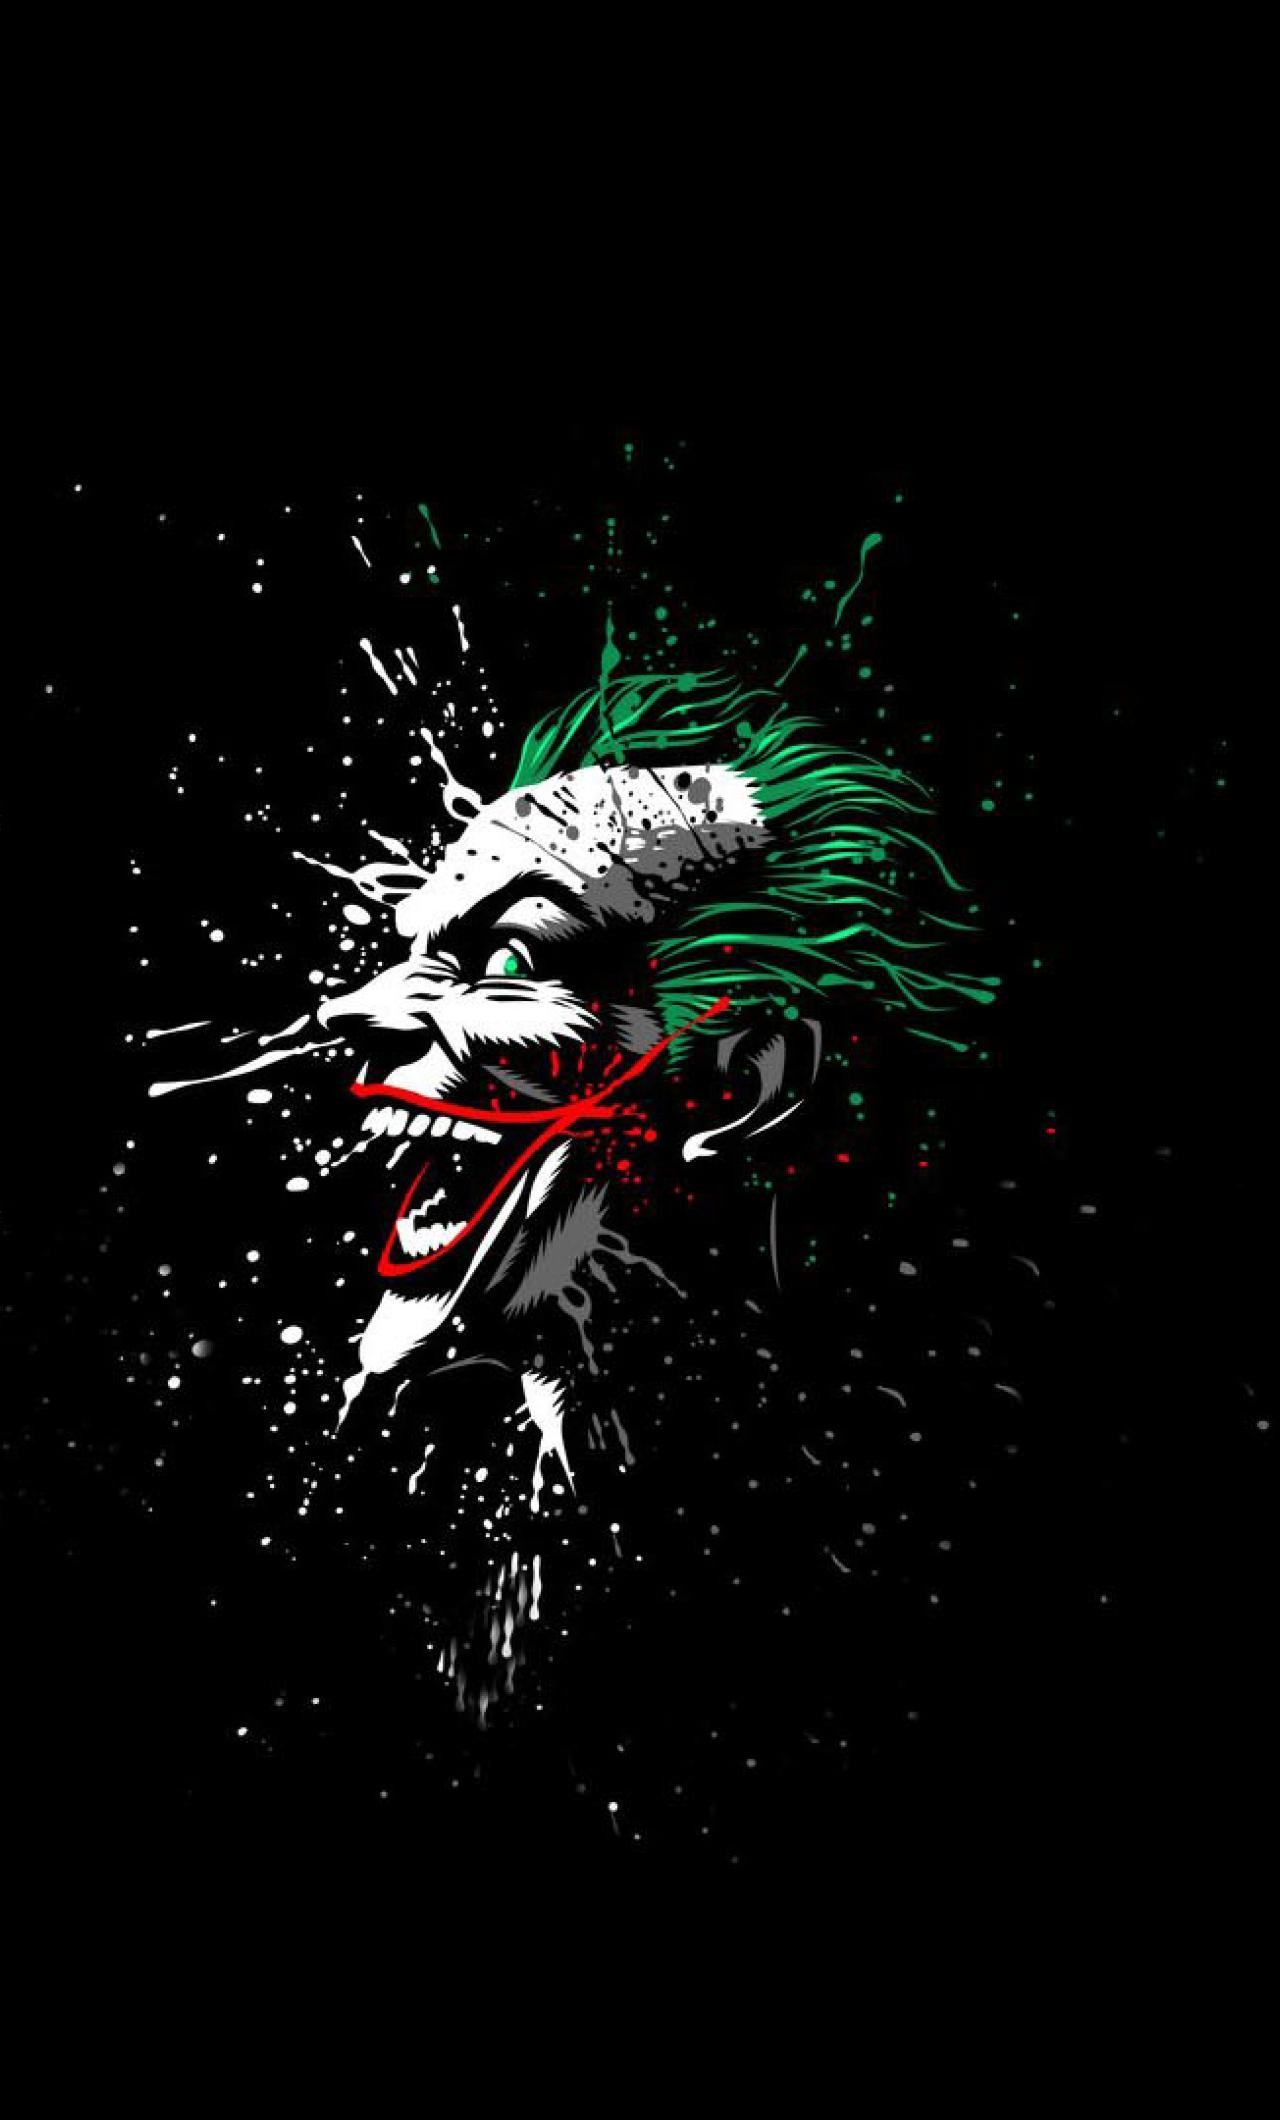 Res: 1280x2120,  Download Joker Artwork 1024x600 Resolution, Full HD Wallpaper